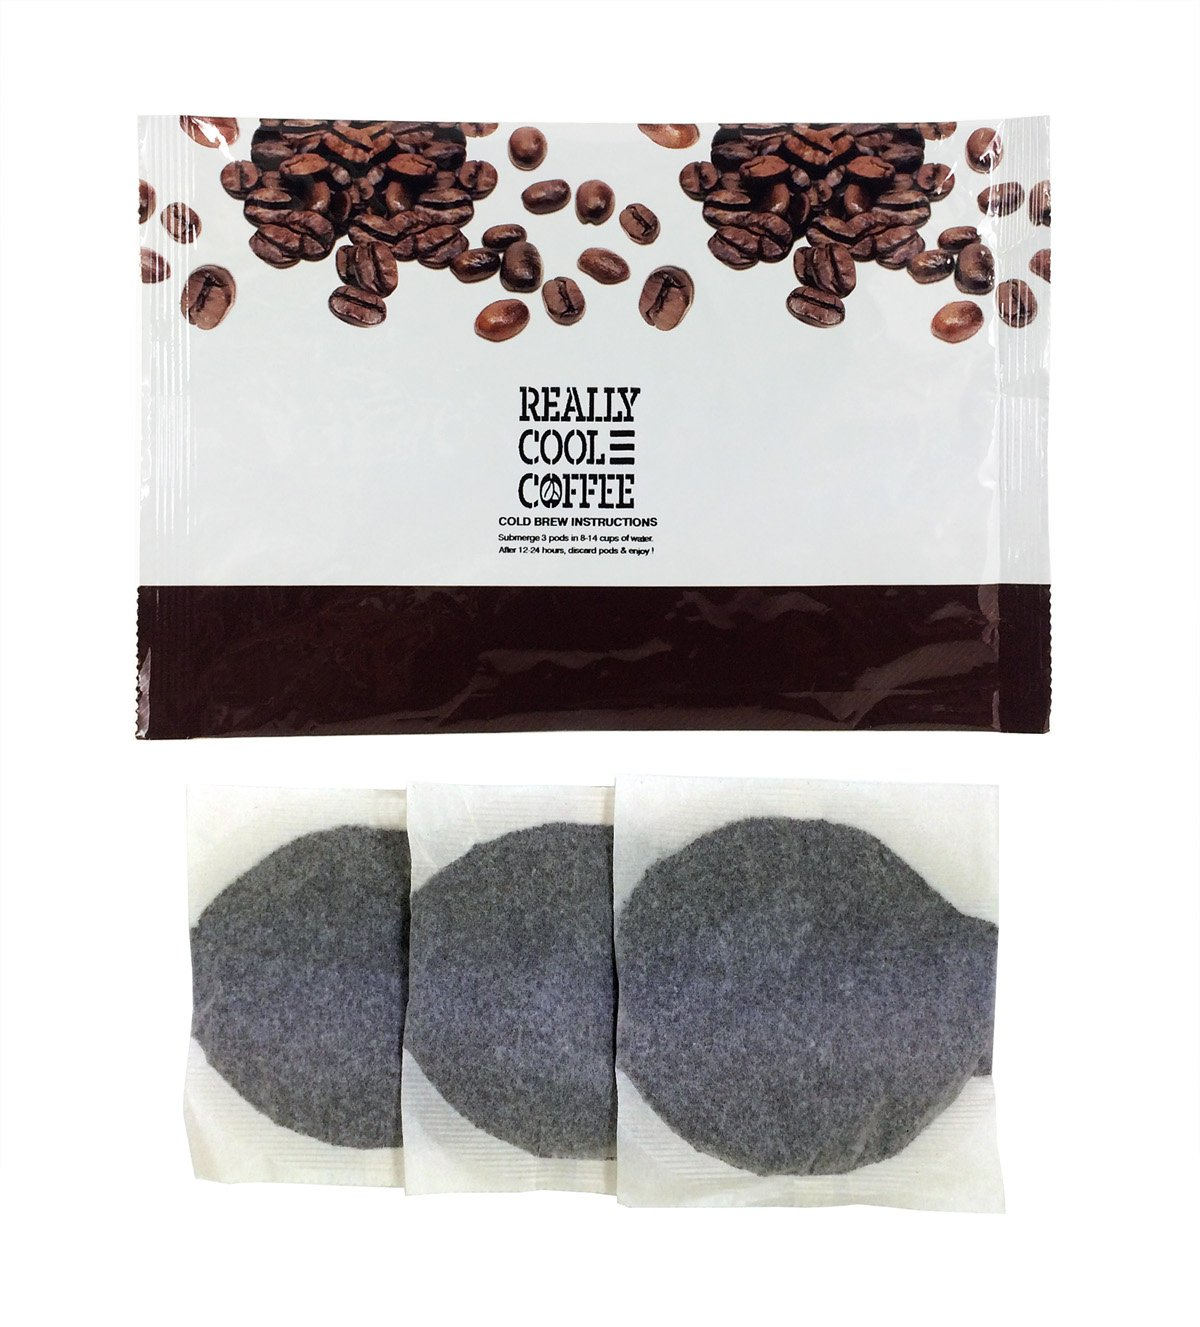 ReallyCoolCoffee Cold Brew Homemade Iced Coffee Kit (1 Foil Pouch, 3 Bags)